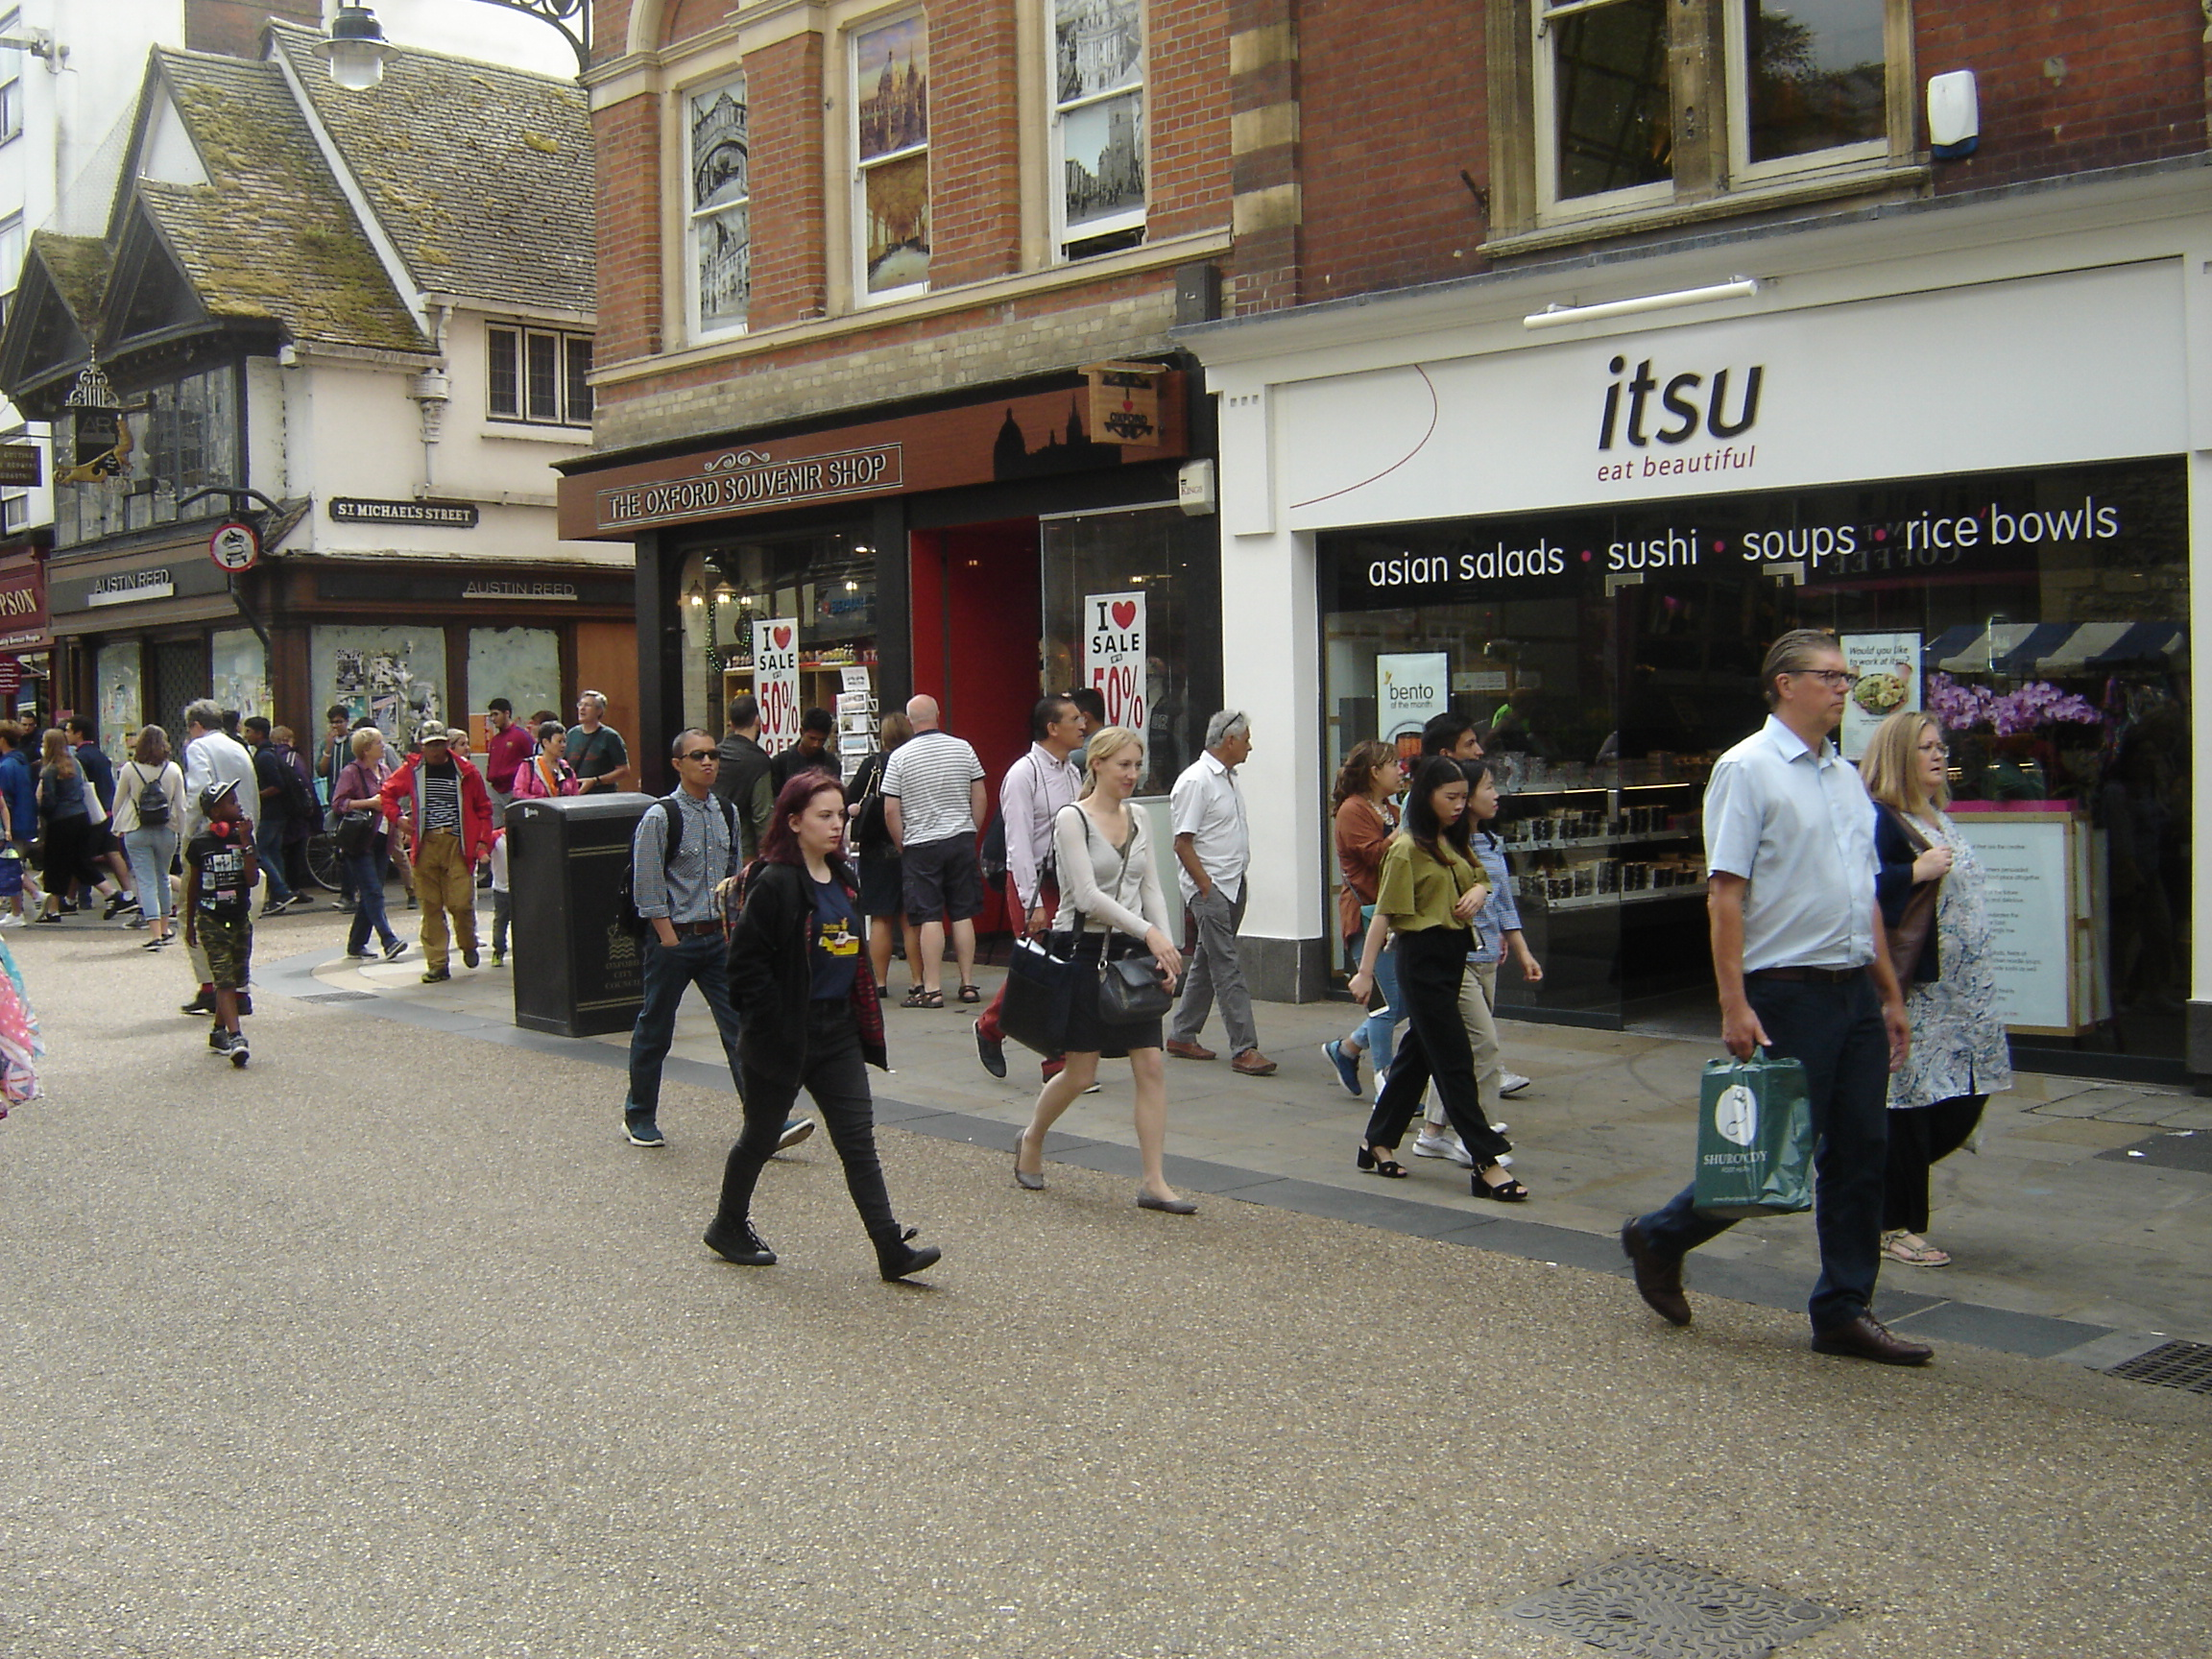 Drab people in Cornmarket, Oxford